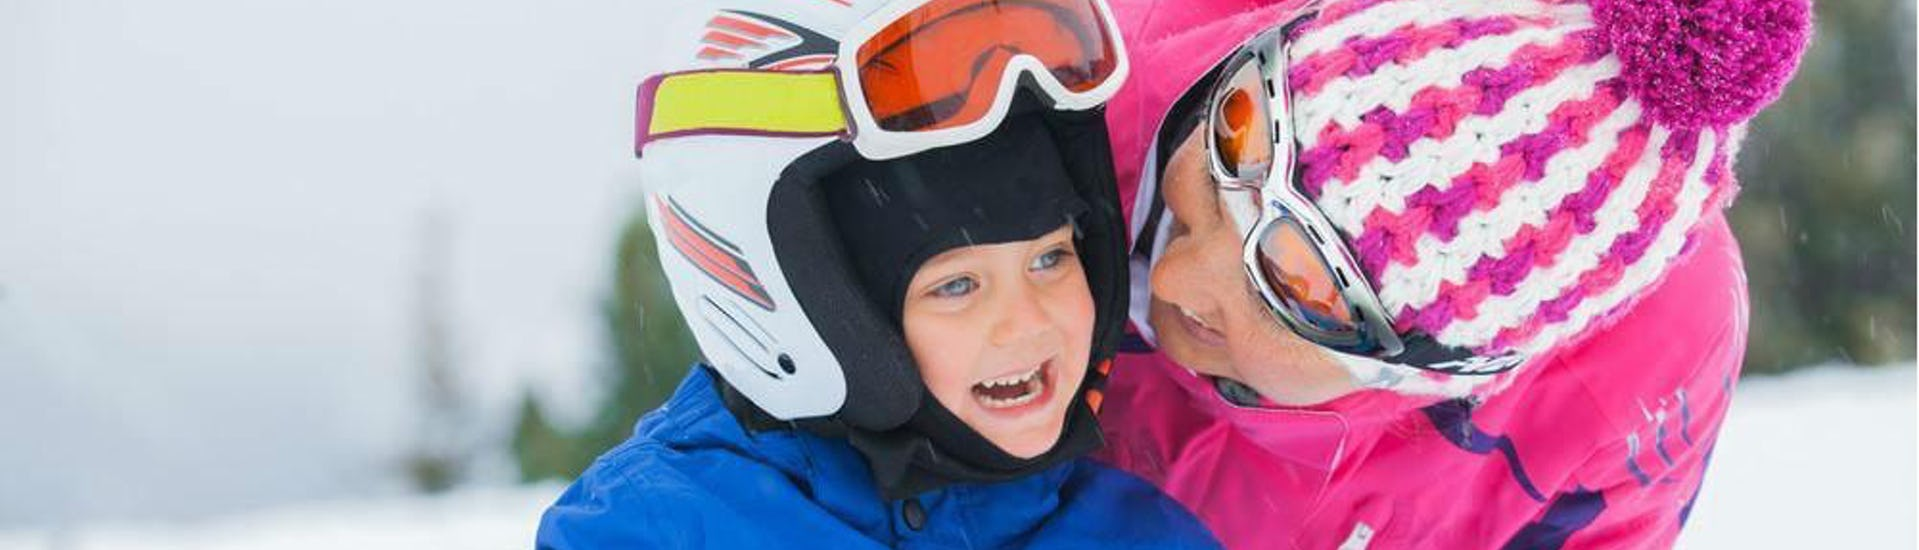 Private Ski Lessons for Kids - New Year Week